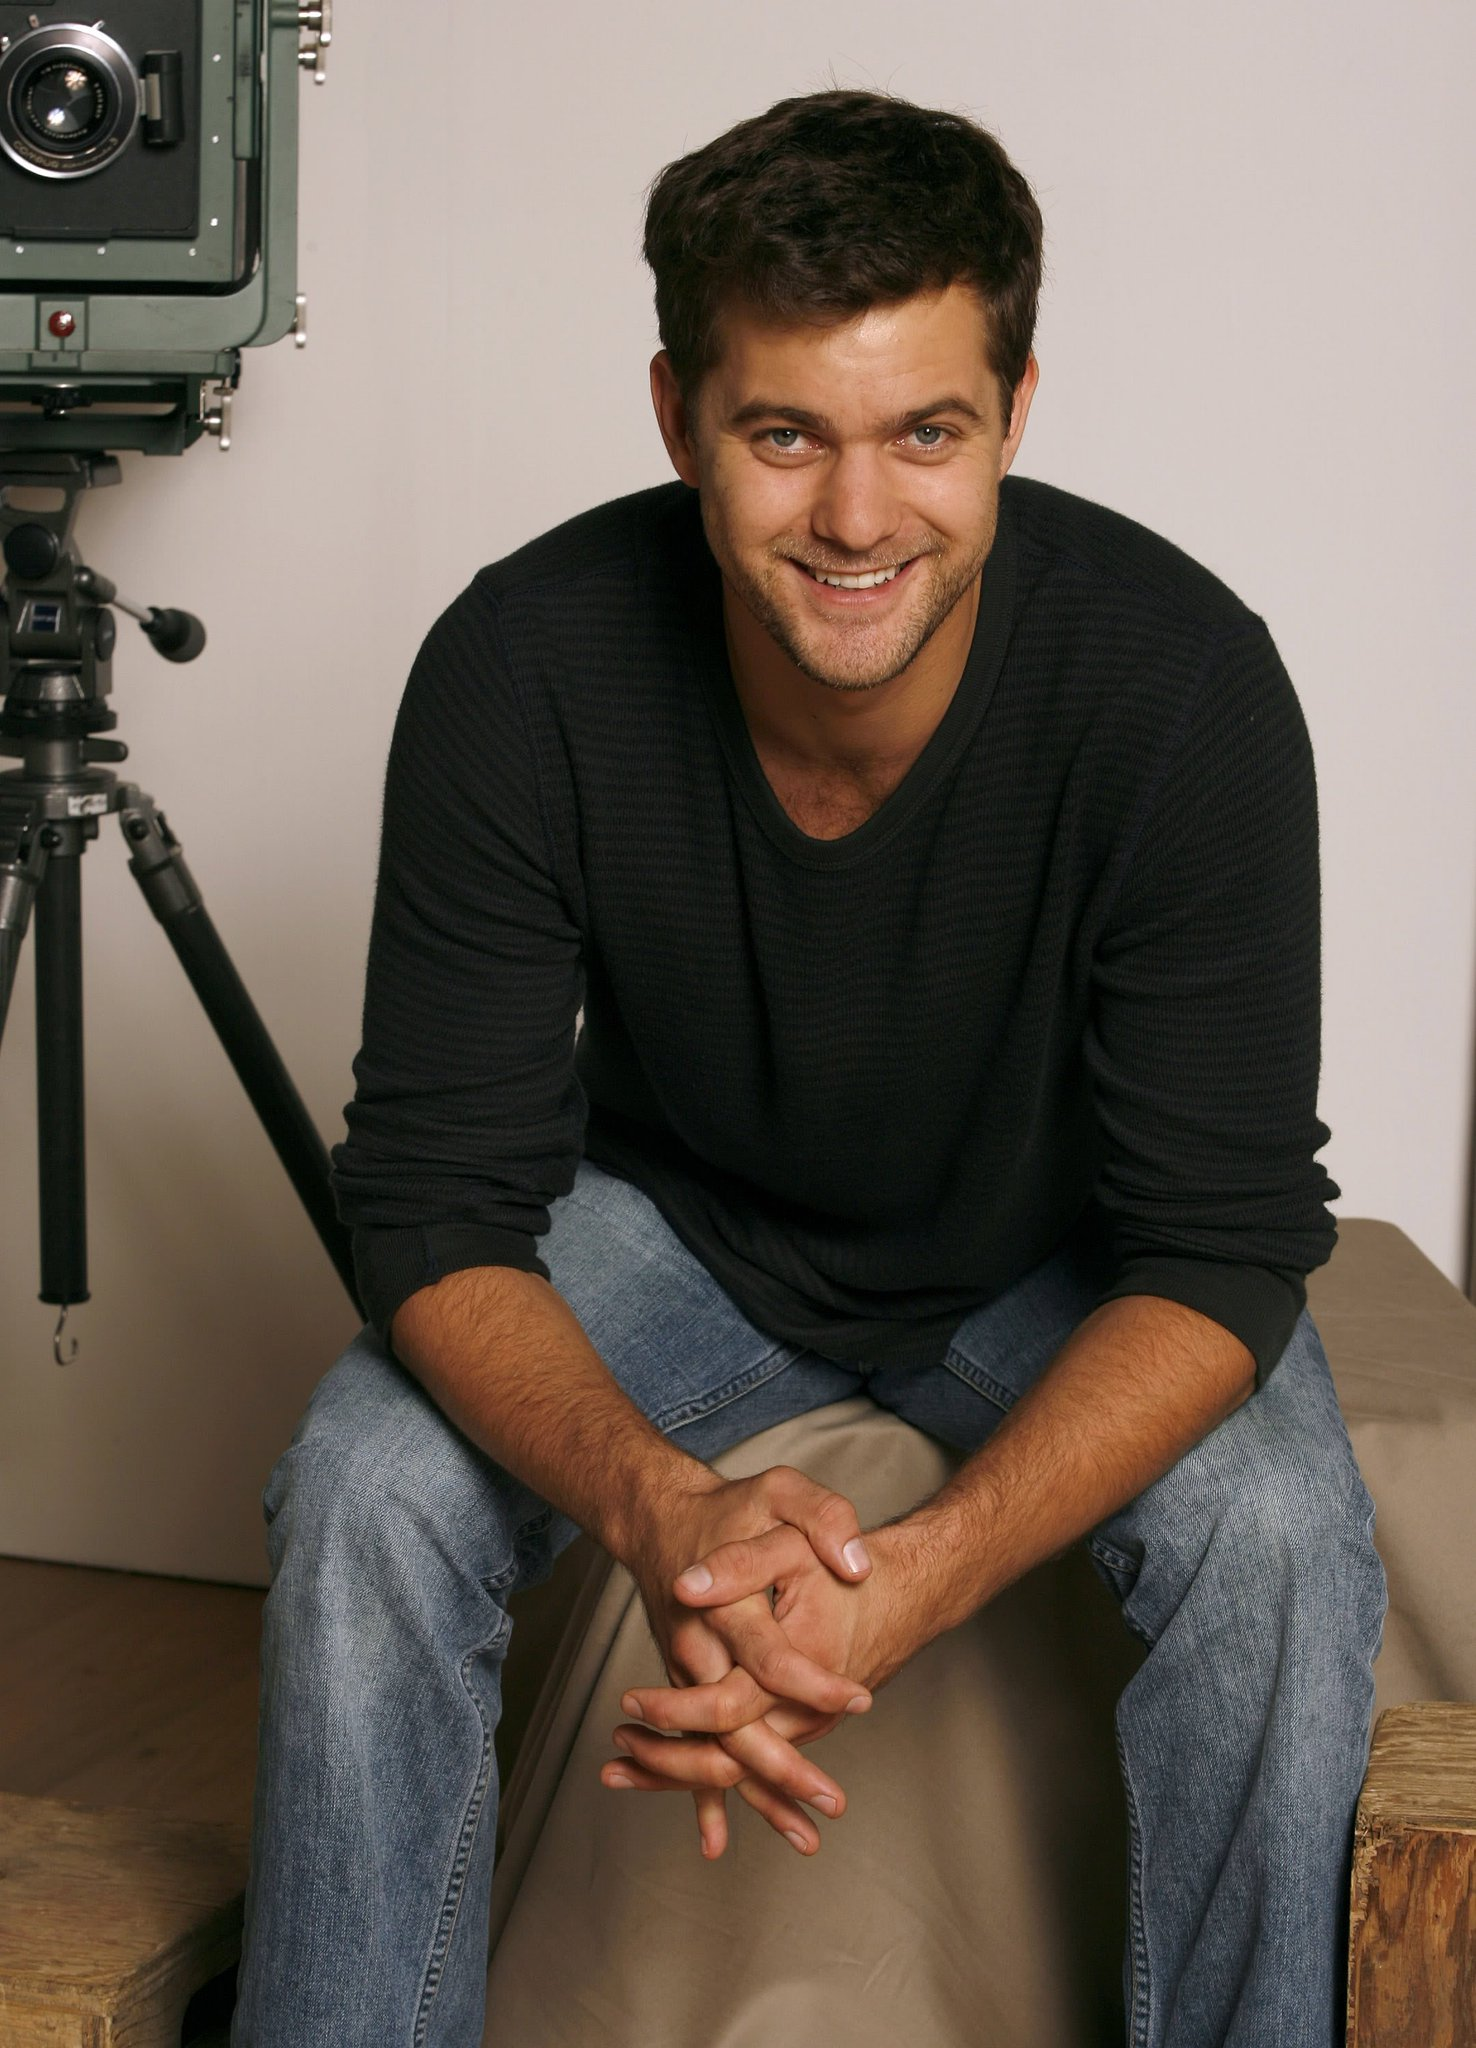 Happy birthday joshua jackson thank you so much for pacey witter